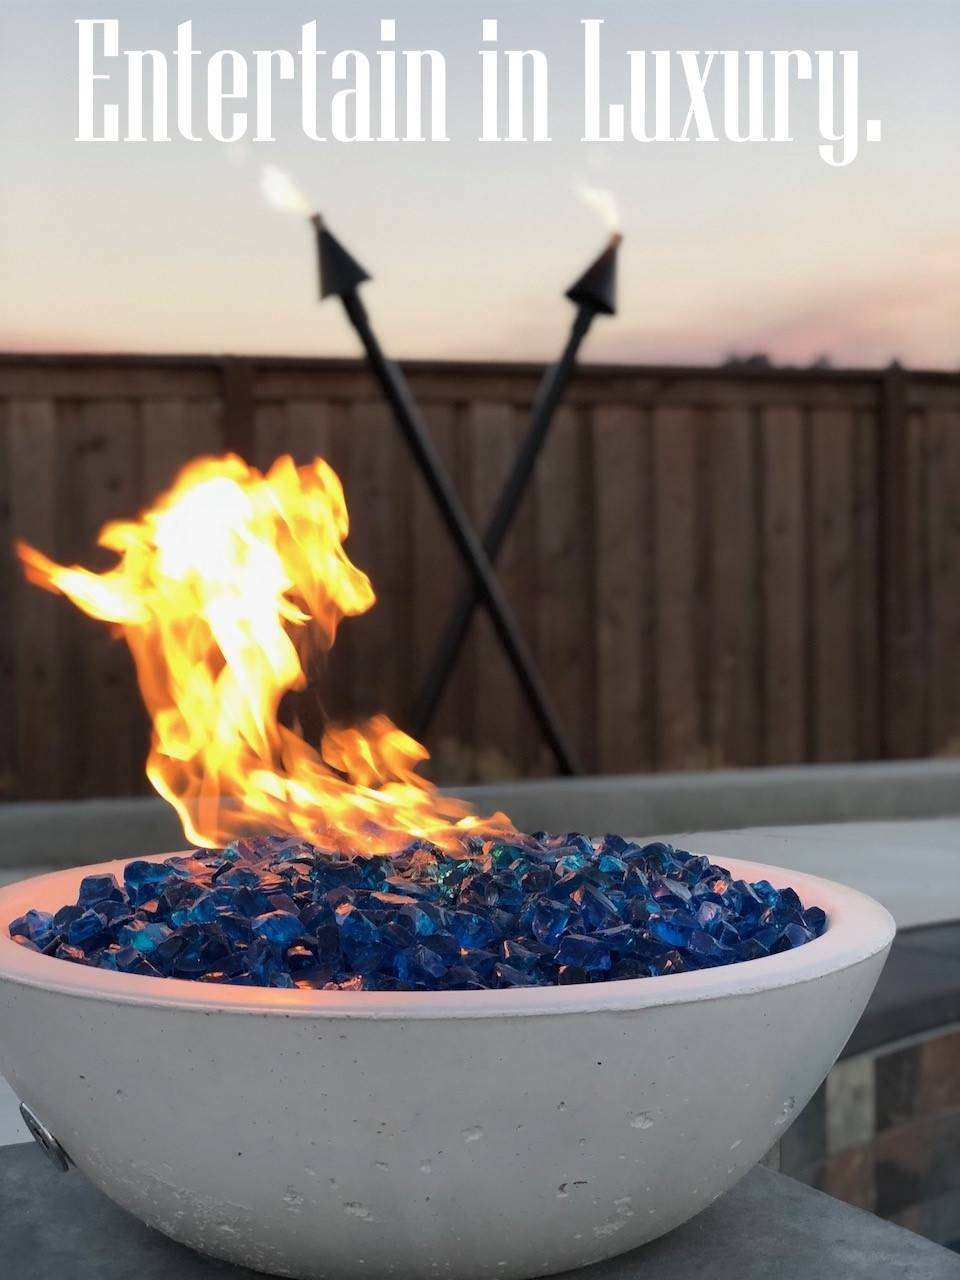 Entertain in Luxury Fire Bowl Lifestyle